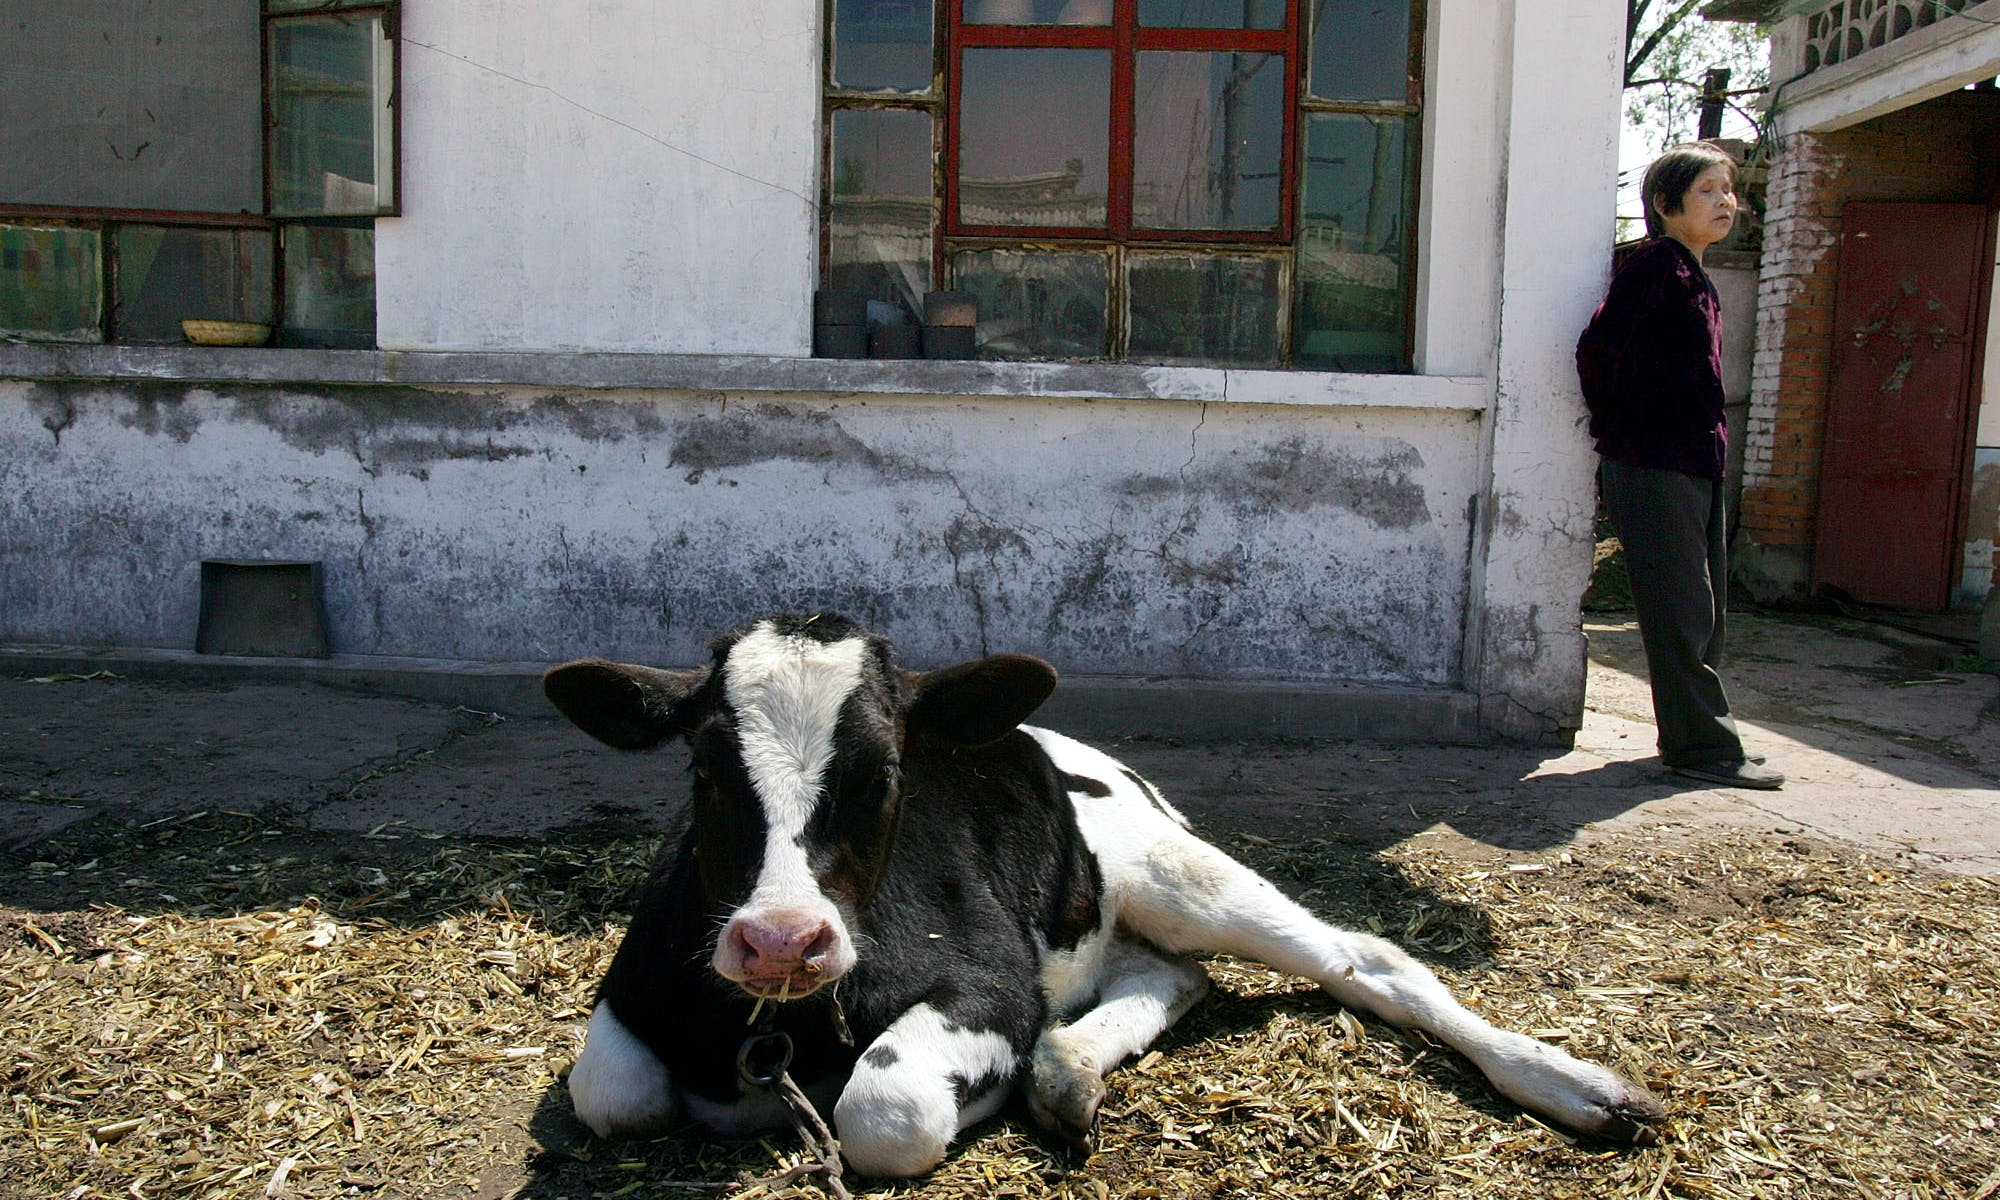 Niu Horizons: The Stunning Growth of China's Dairy Industry